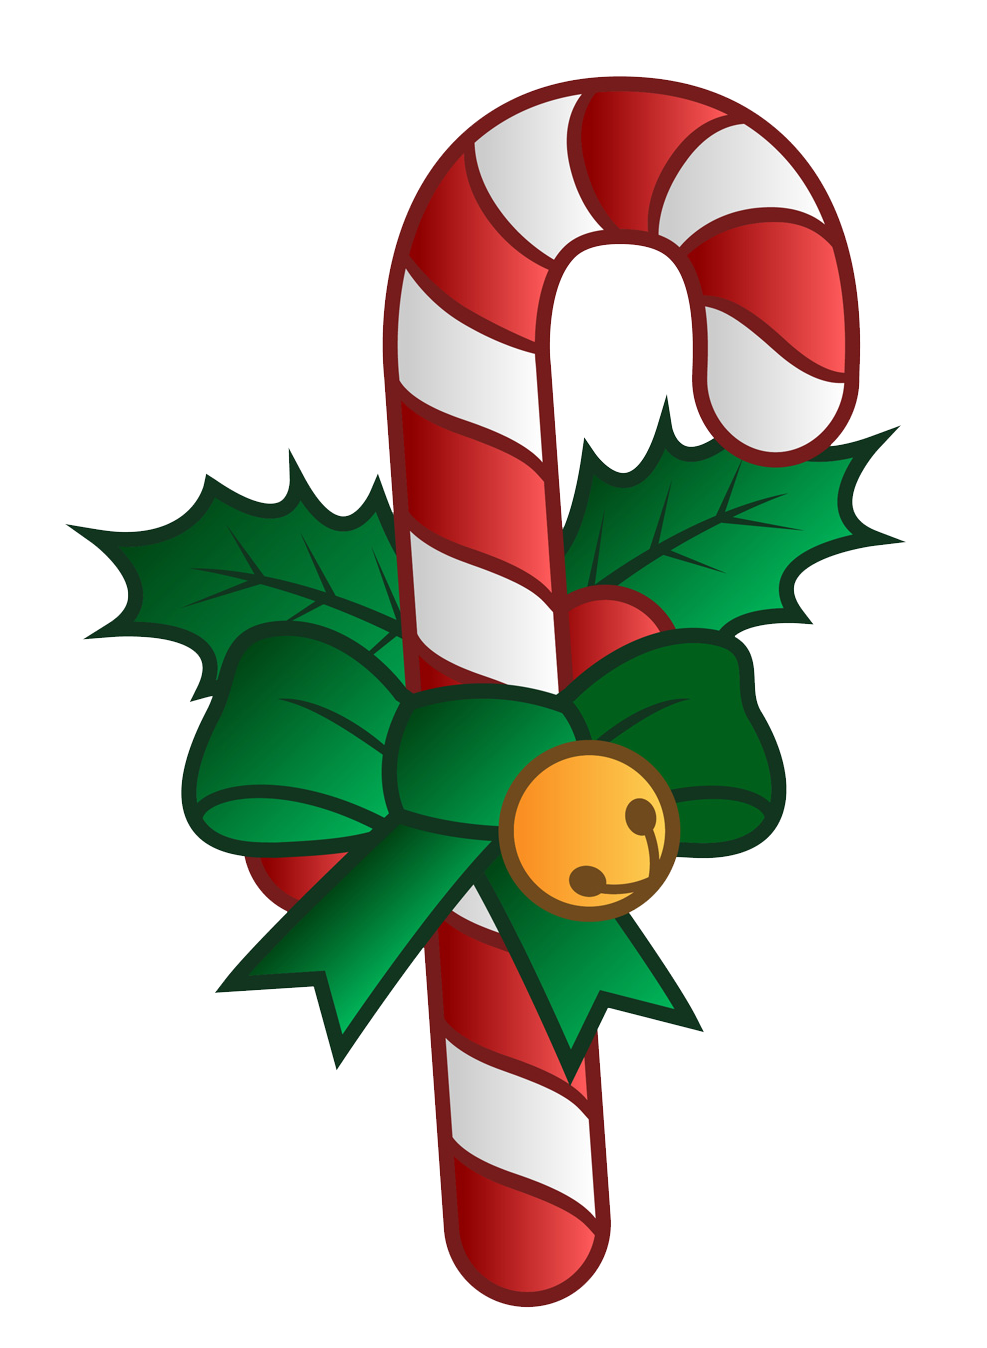 Christmas Wishes Candy cane template, Christmas candy